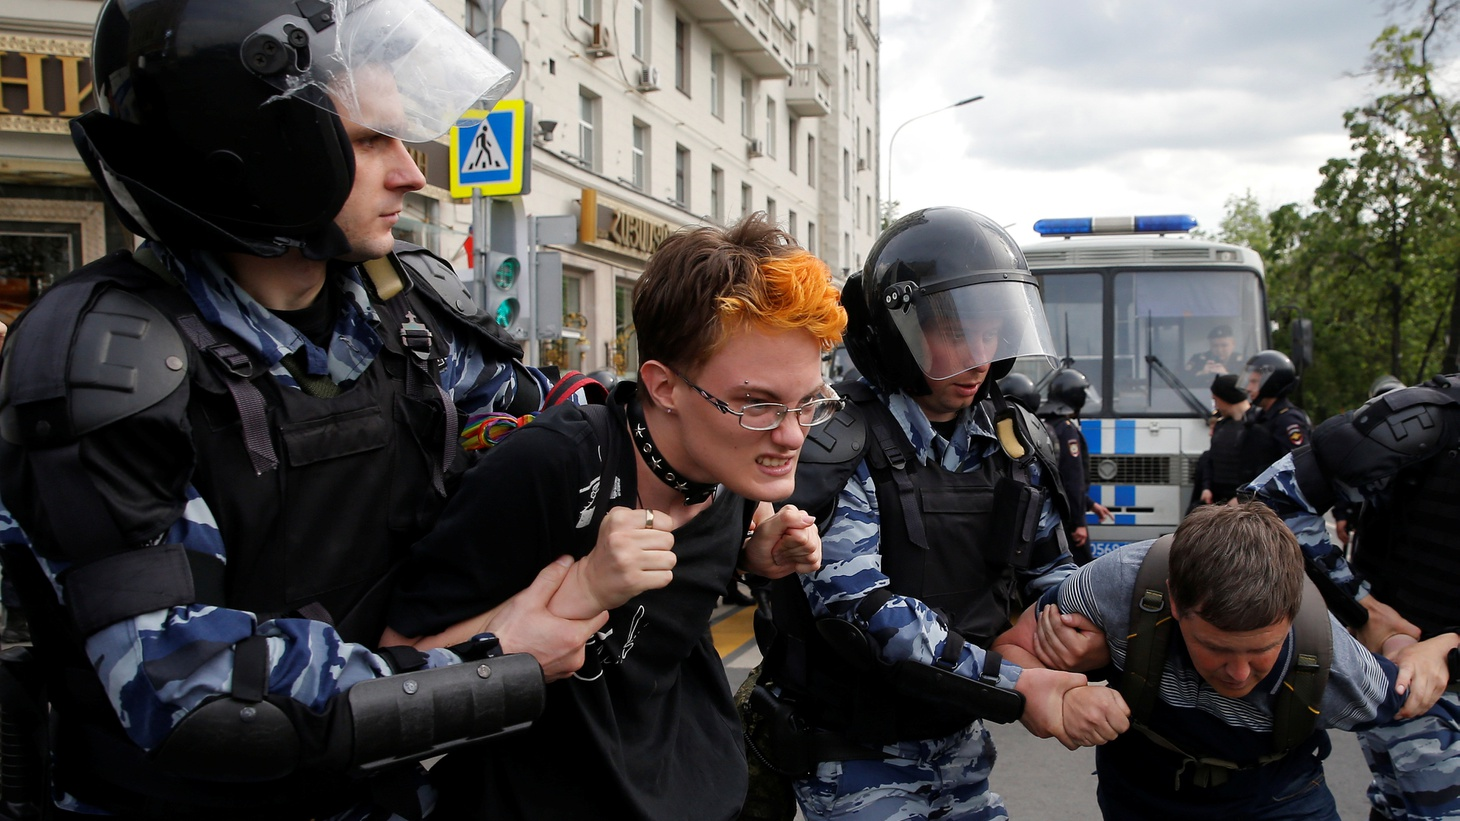 Riot police detain demonstrators during an anti-corruption protest organised by opposition leader Alexei Navalny, on Tverskaya Street in central Moscow, Russia, June 12, 2017 Photo by Maxim Shemetov/Reuters 